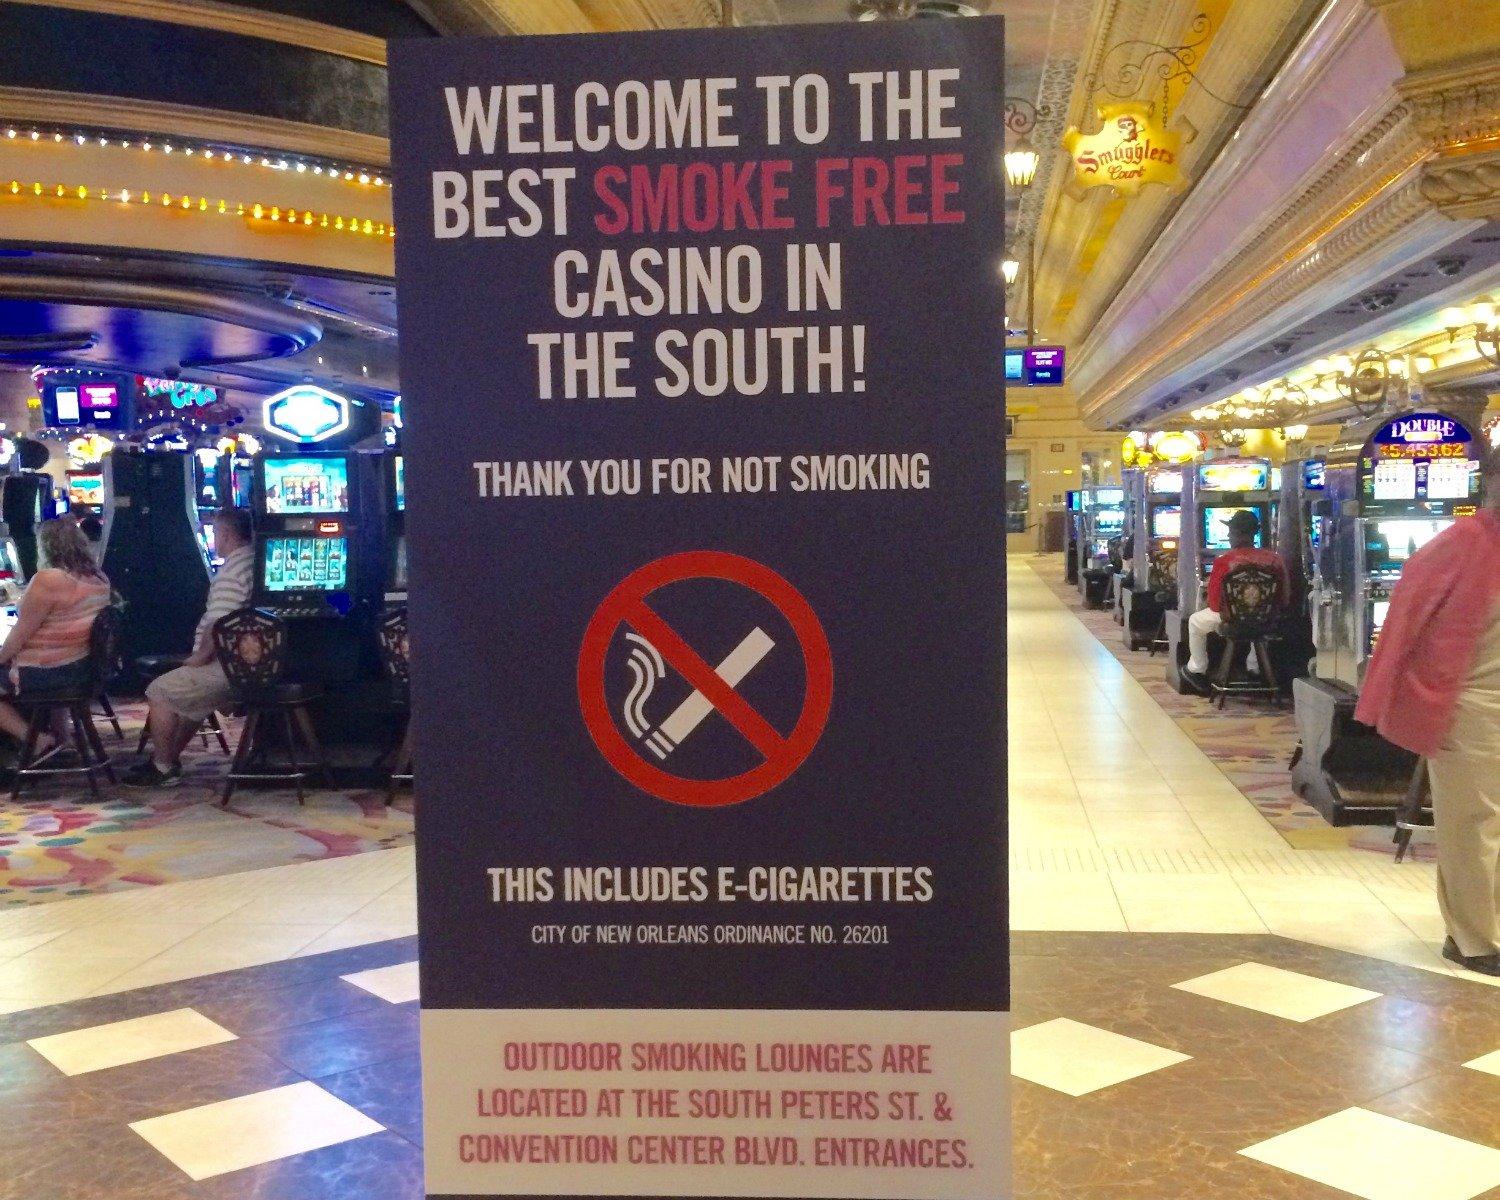 smoking bans in casinos Casinos, smoking bans, and revenues: a survey of casino gamblers in illinois  clyde w barrow and david r borges in 2006, the us surgeon general.